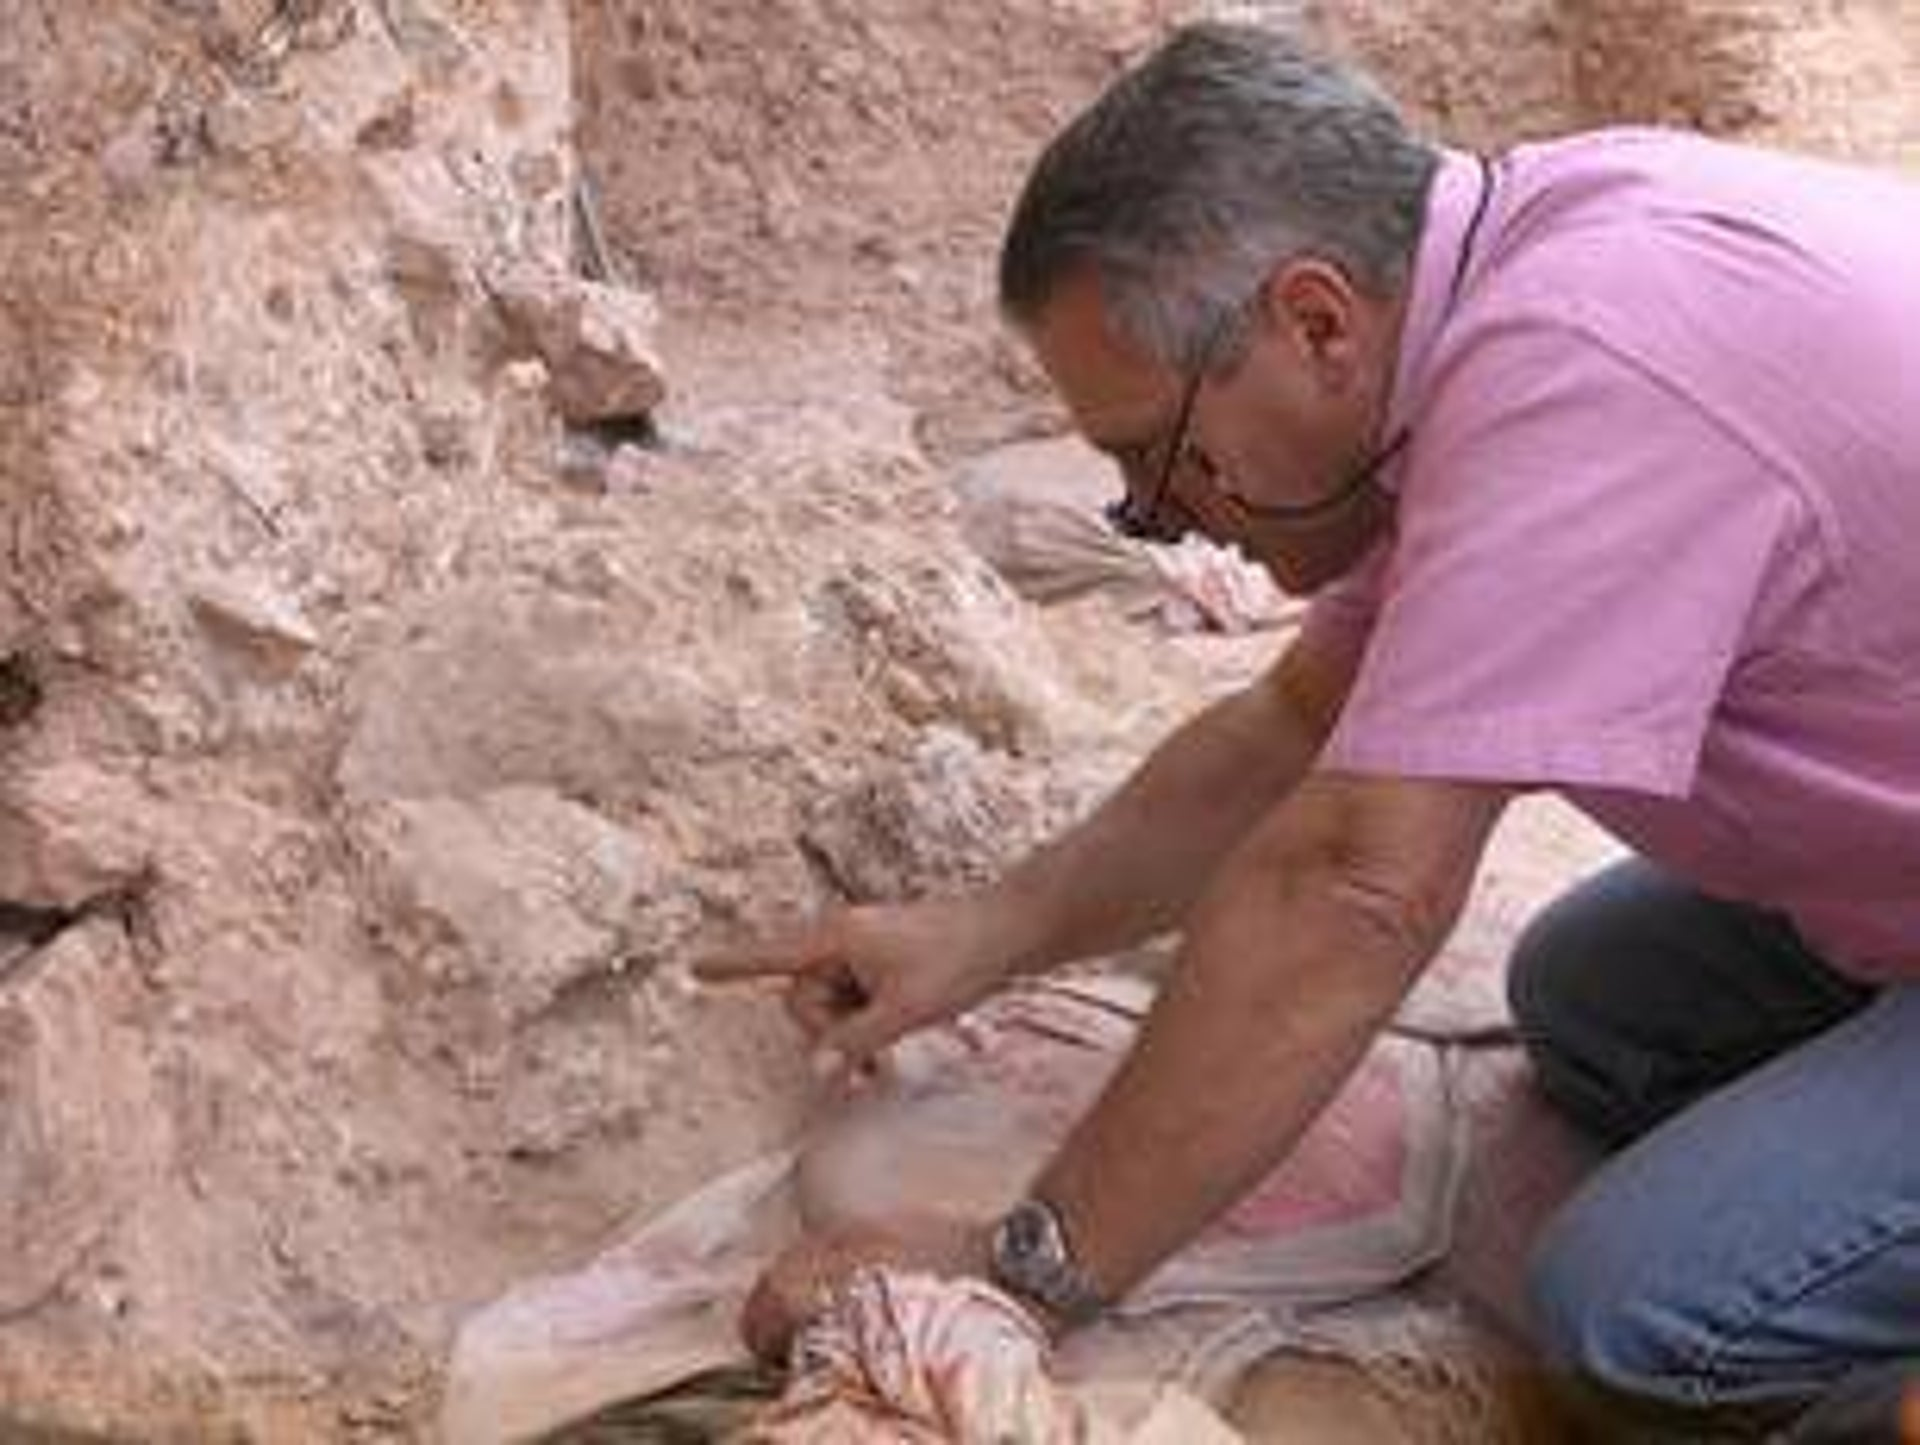 Jean-Jacques Hublin at Jebel Irhoud (Morocco), pointing to the crushed human skull whose orbits are visible just beyond his finger tip.